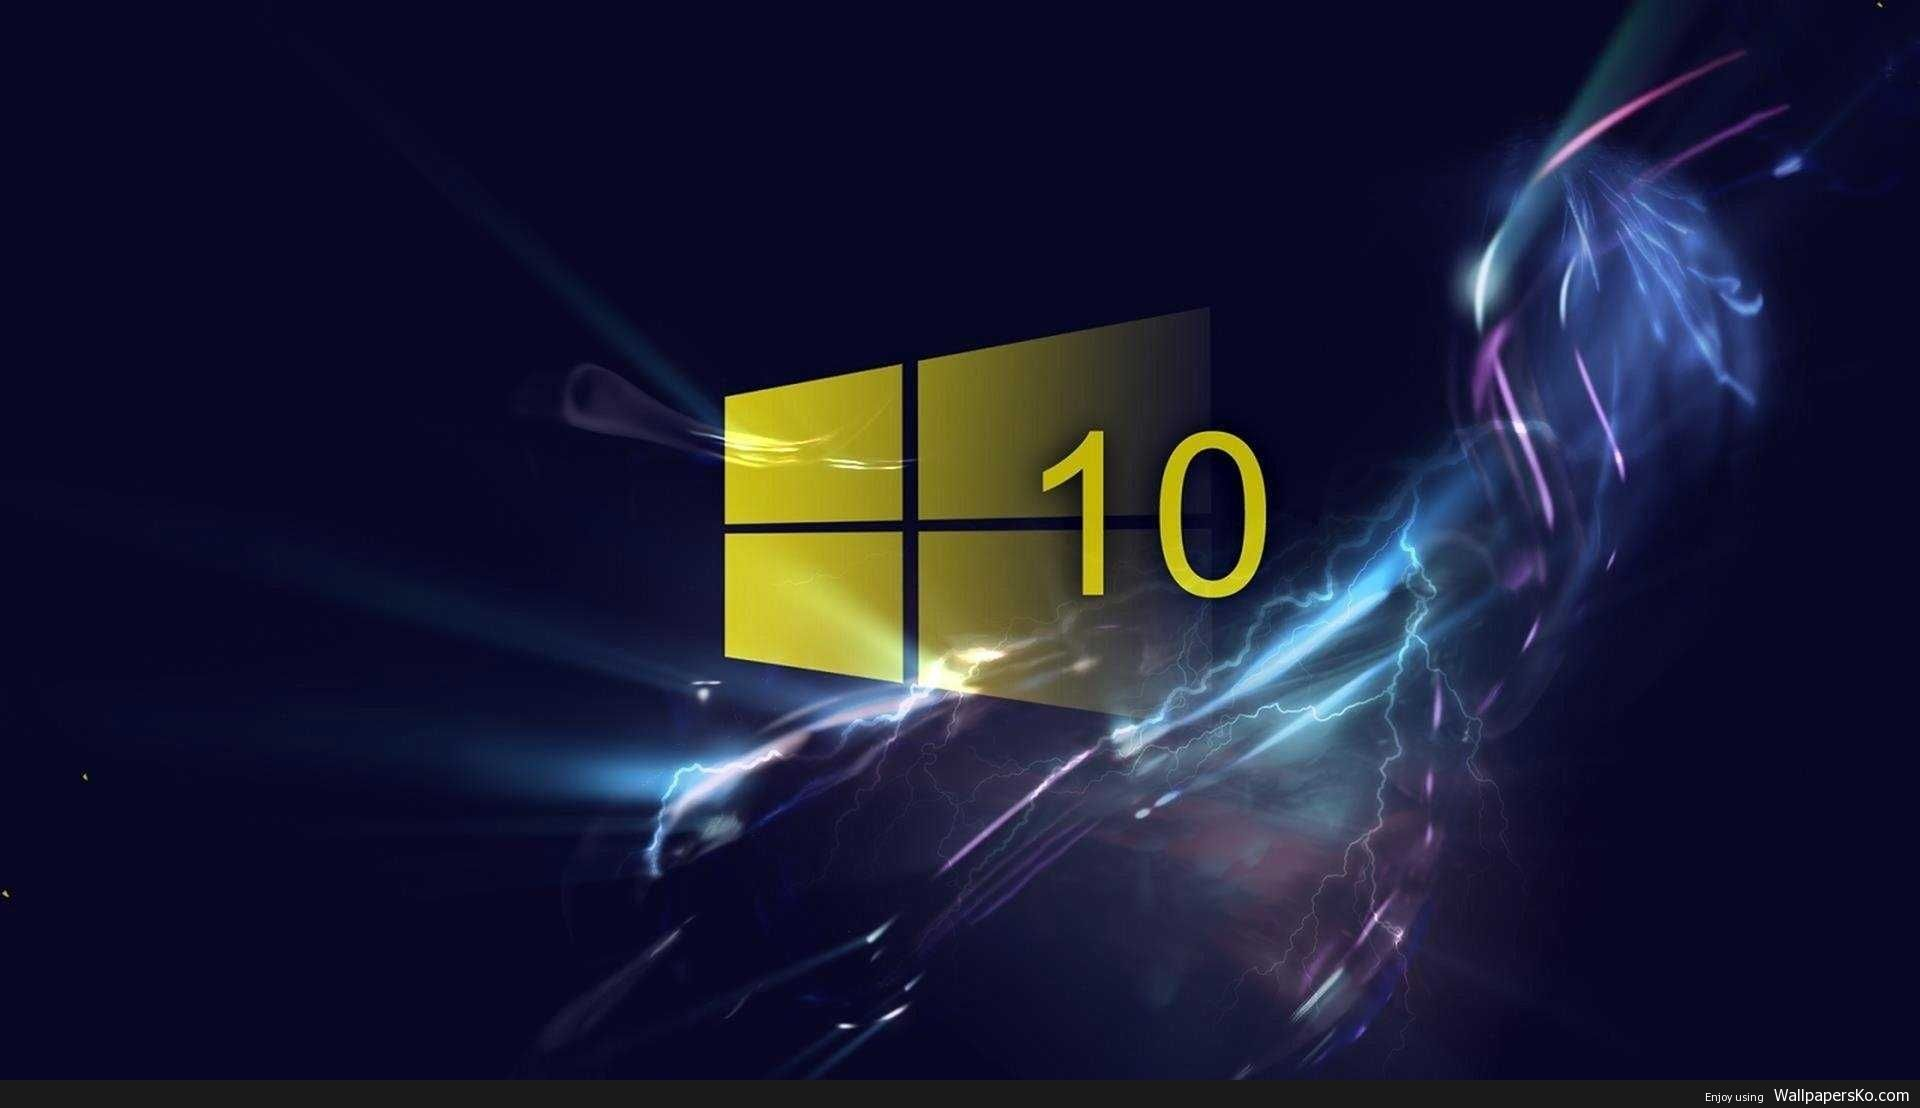 Hd Wallpaper Windows 10 Http Wallpapersko Com Hd Wallpaper Windows 10 Html Hd Wallpapers Download Wallpaper Windows 10 Hd Wallpapers For Laptop Windows 10